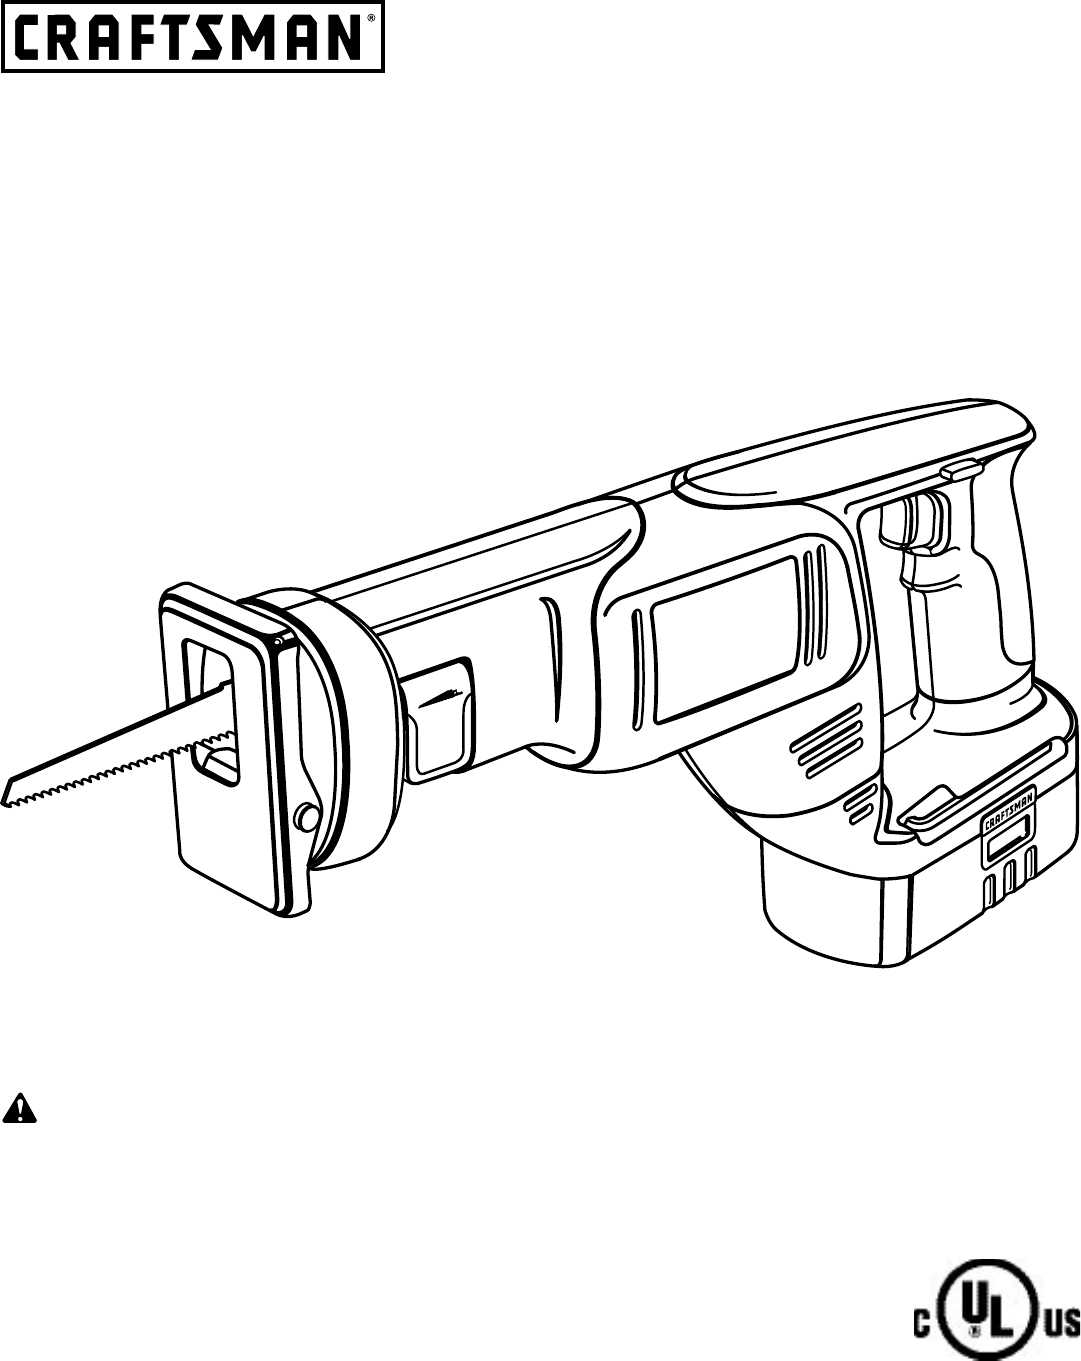 Page 5 of Craftsman Cordless Drill 315.11485 User Guide